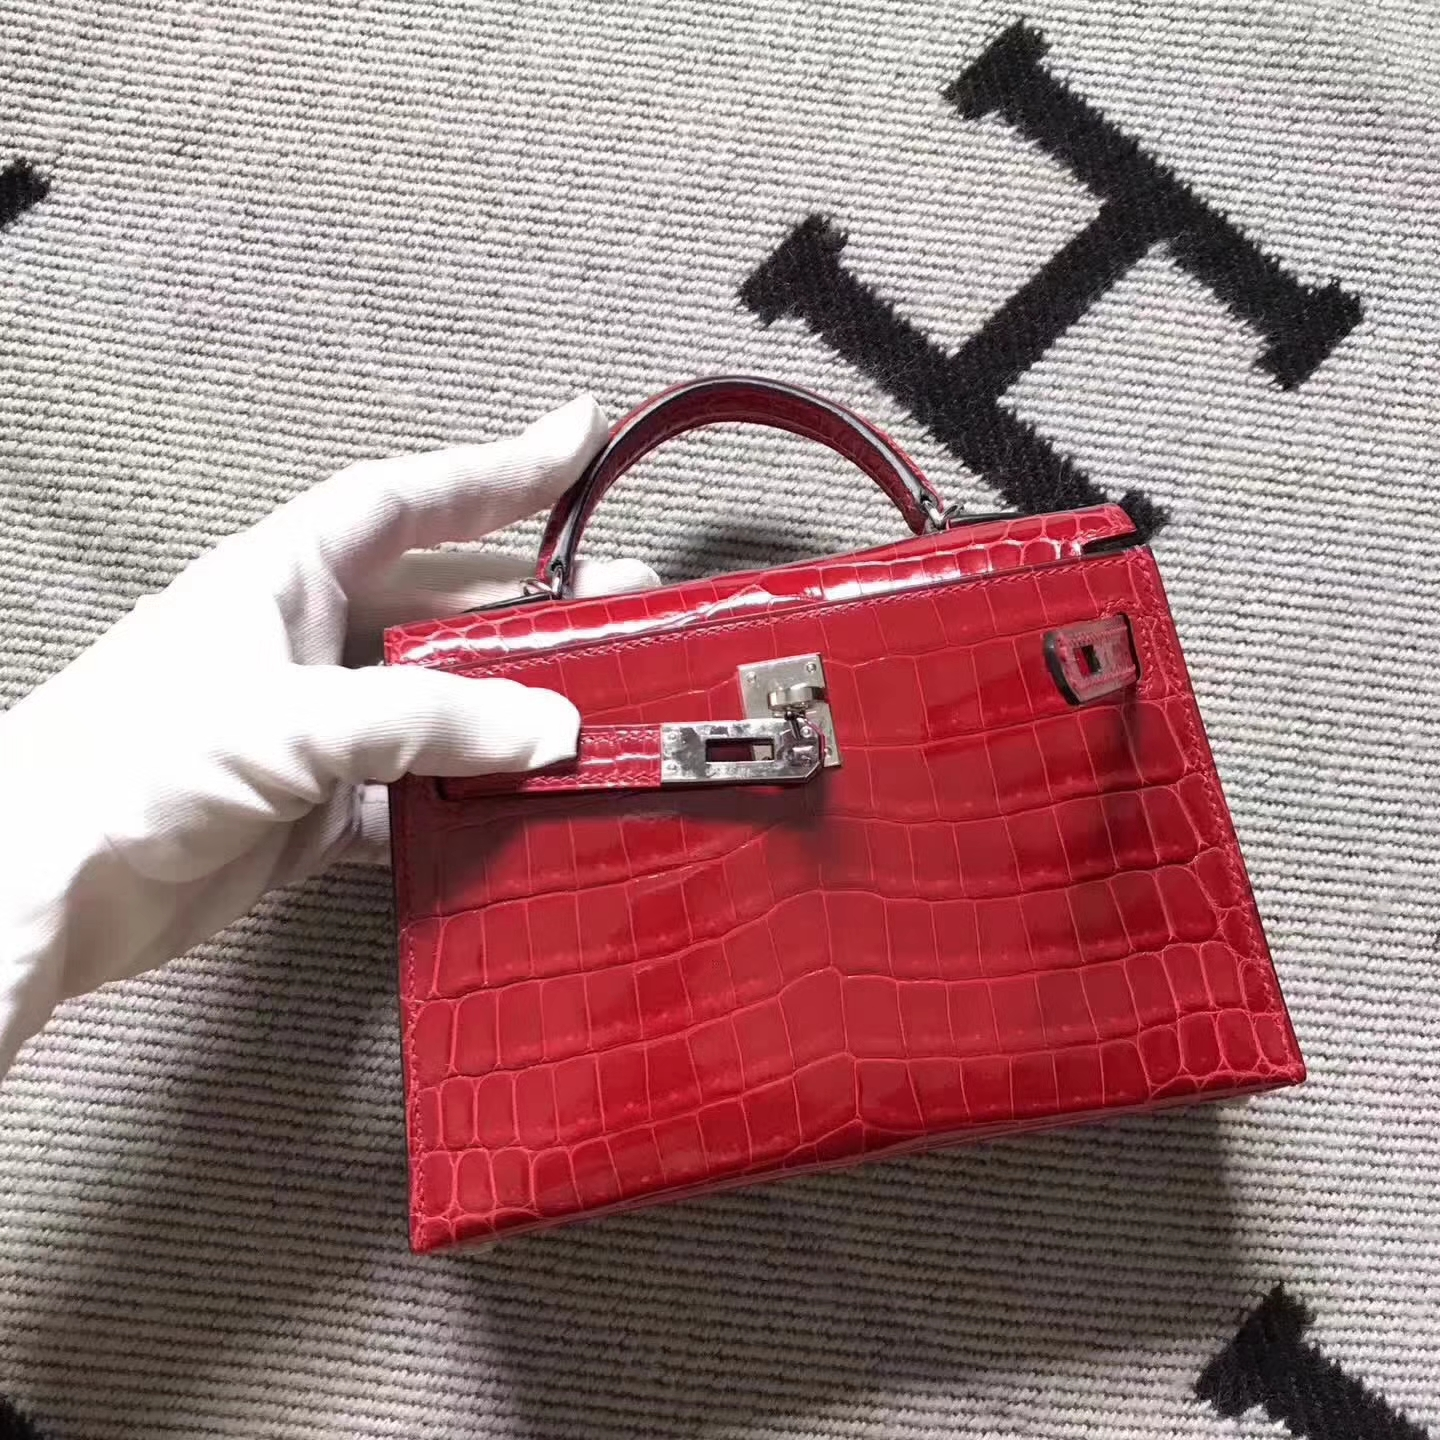 Discount Hermes Red Crocodile ShinyLeather Minikelly-2 Evening Bag Clutch Bag